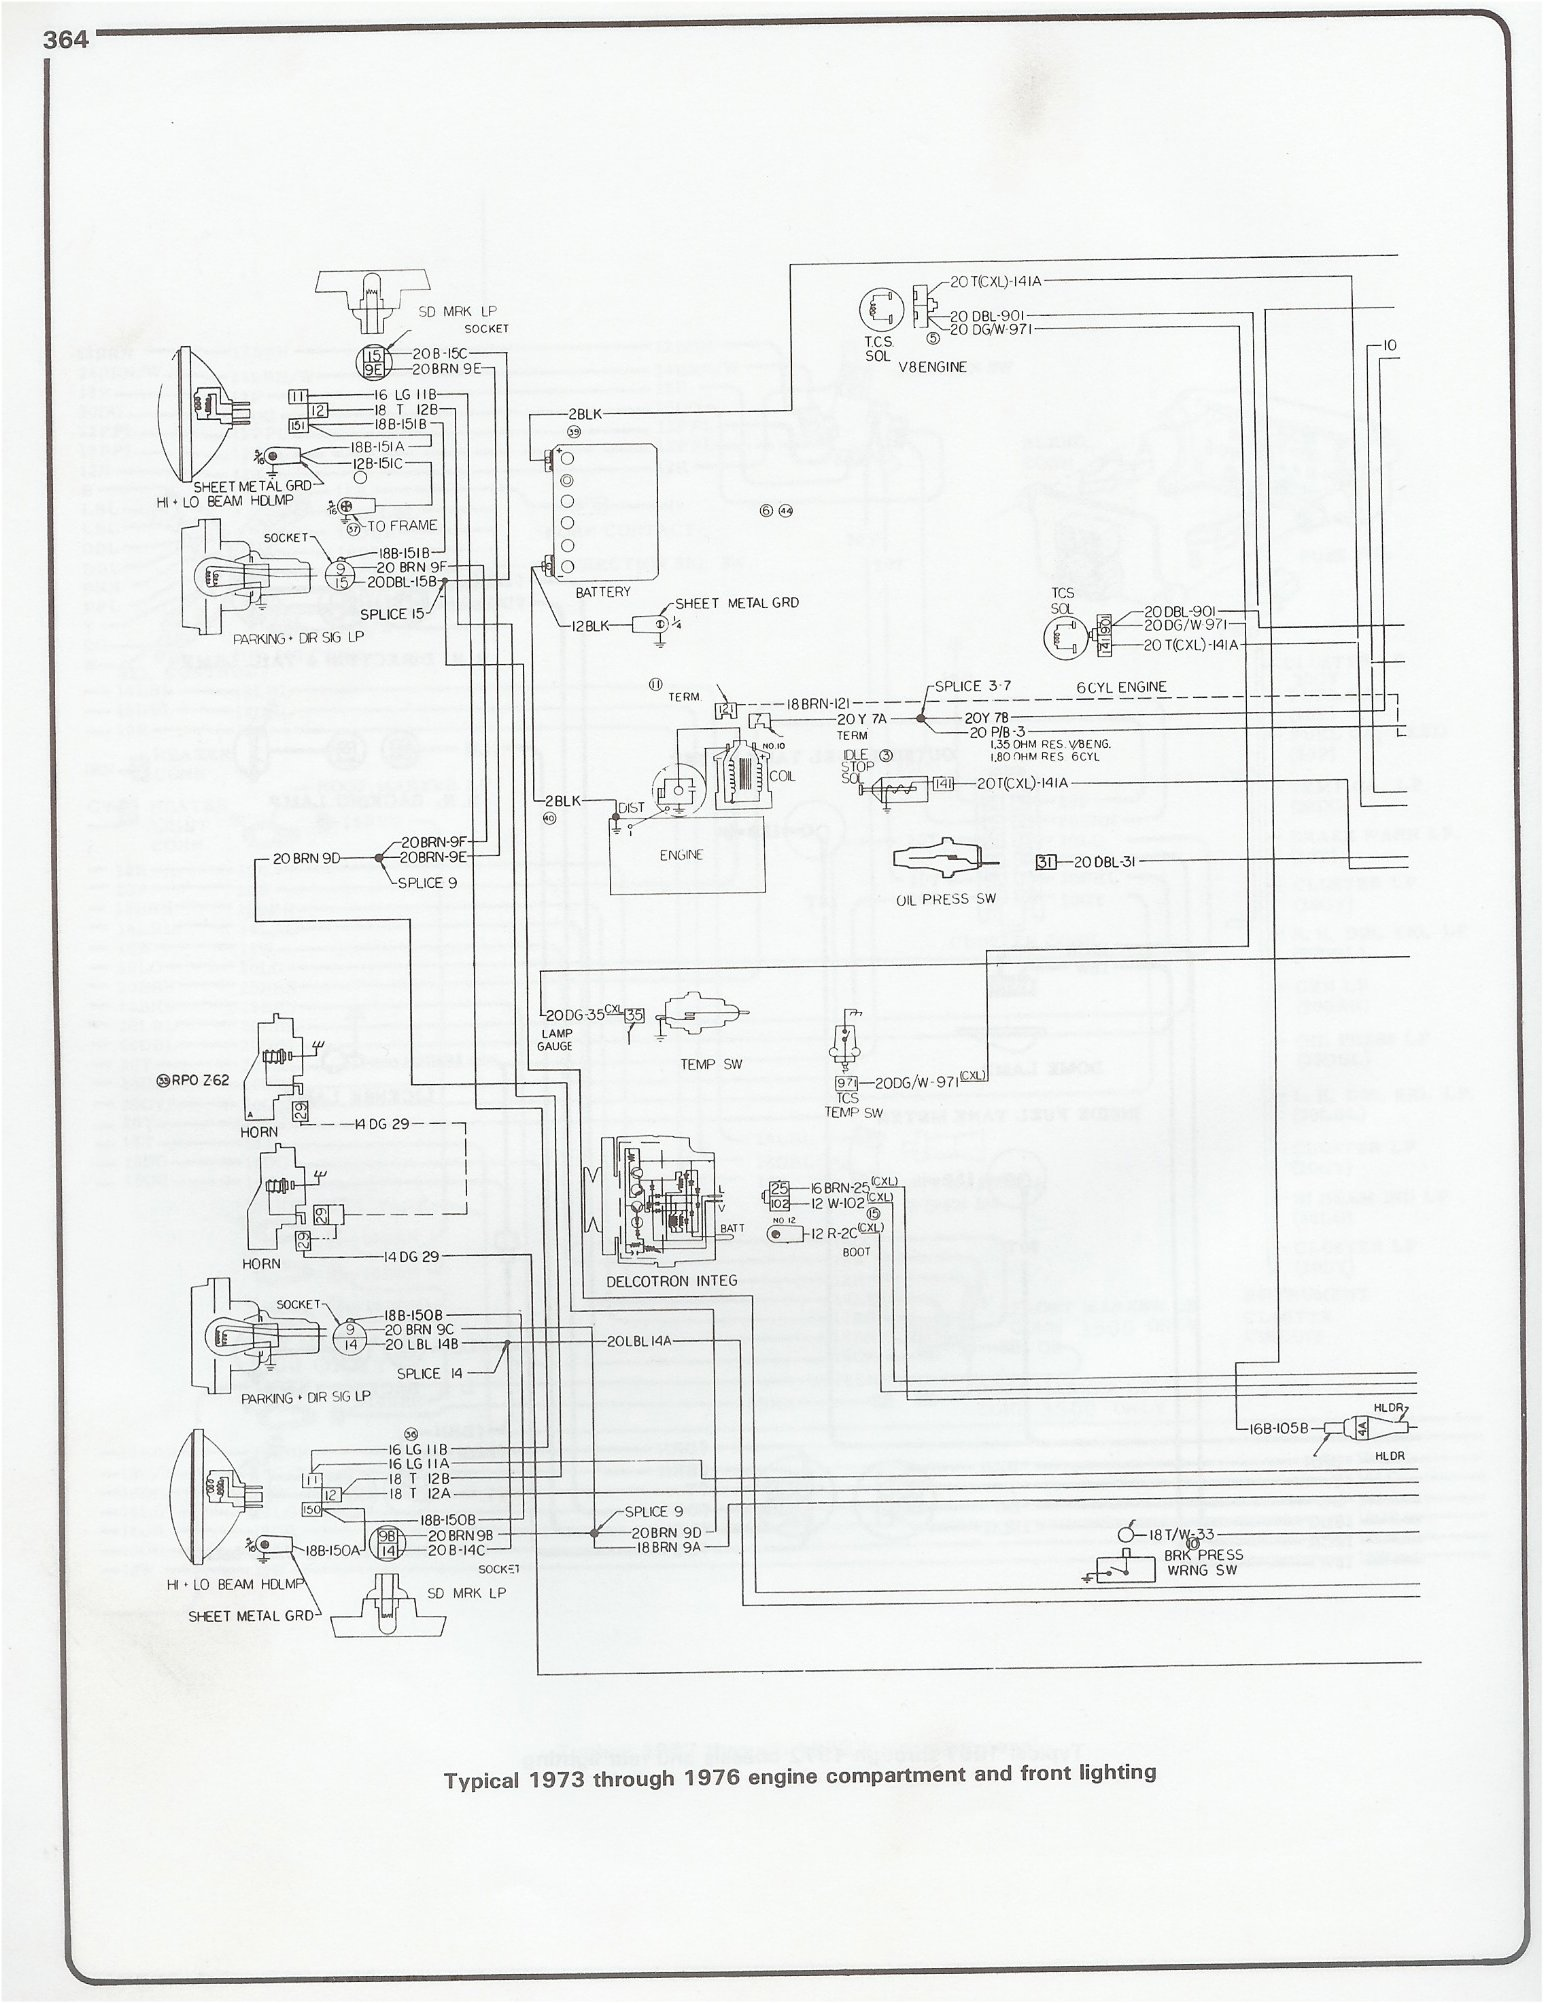 complete 73 87 wiring diagrams rh forum 73 87chevytrucks com 1995 GMC Truck Wiring Diagrams 2002 GMC Truck Wiring Diagrams